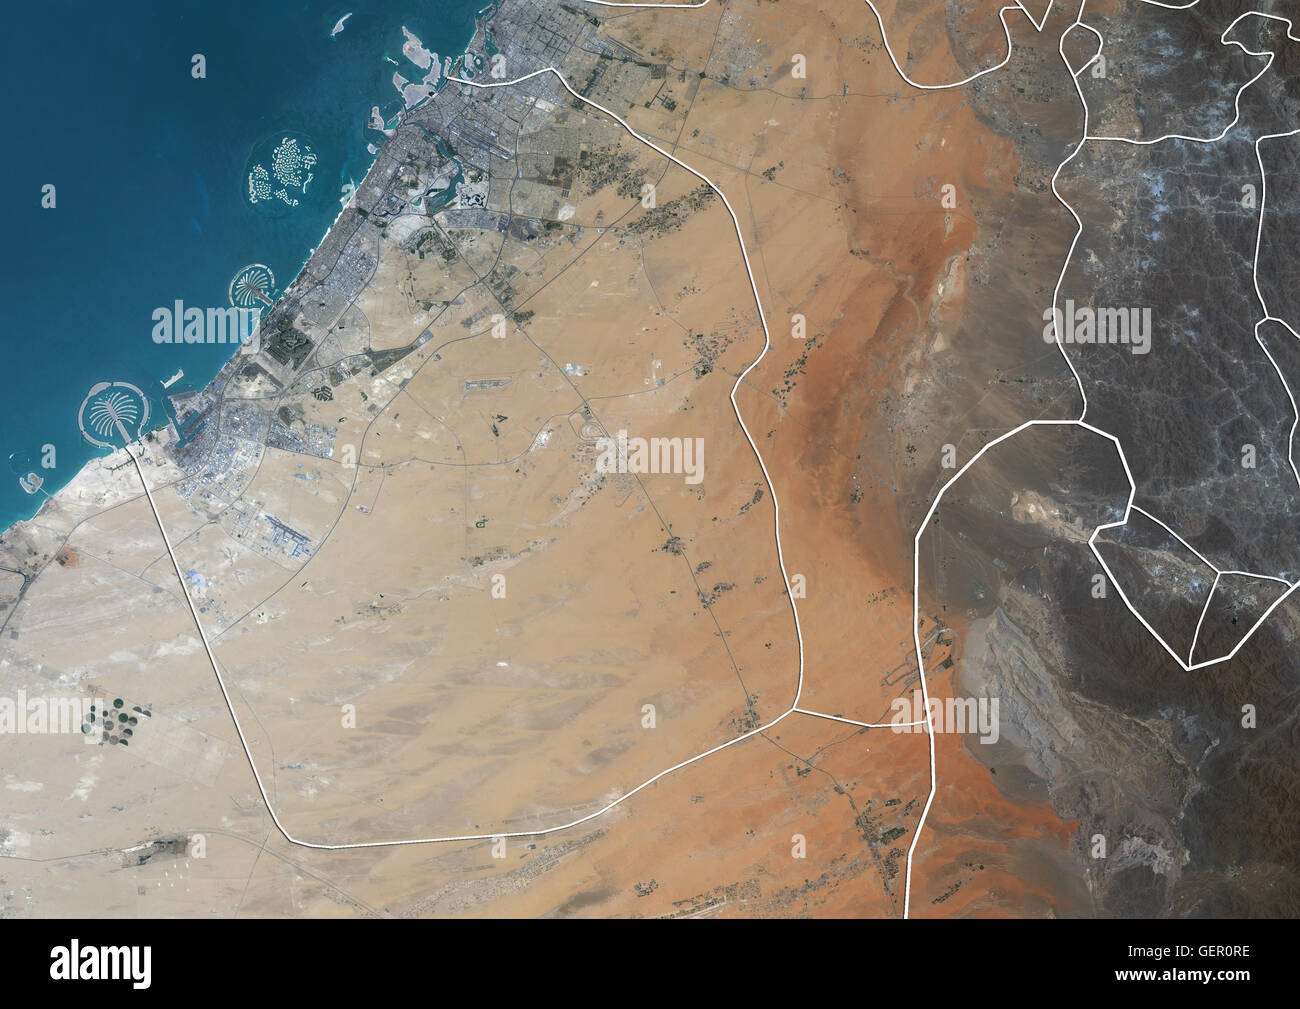 Satellite view of the Emirate of Dubai, United Arab Emirates (with country boundaries). The image shows Palm Jebel - Stock Image